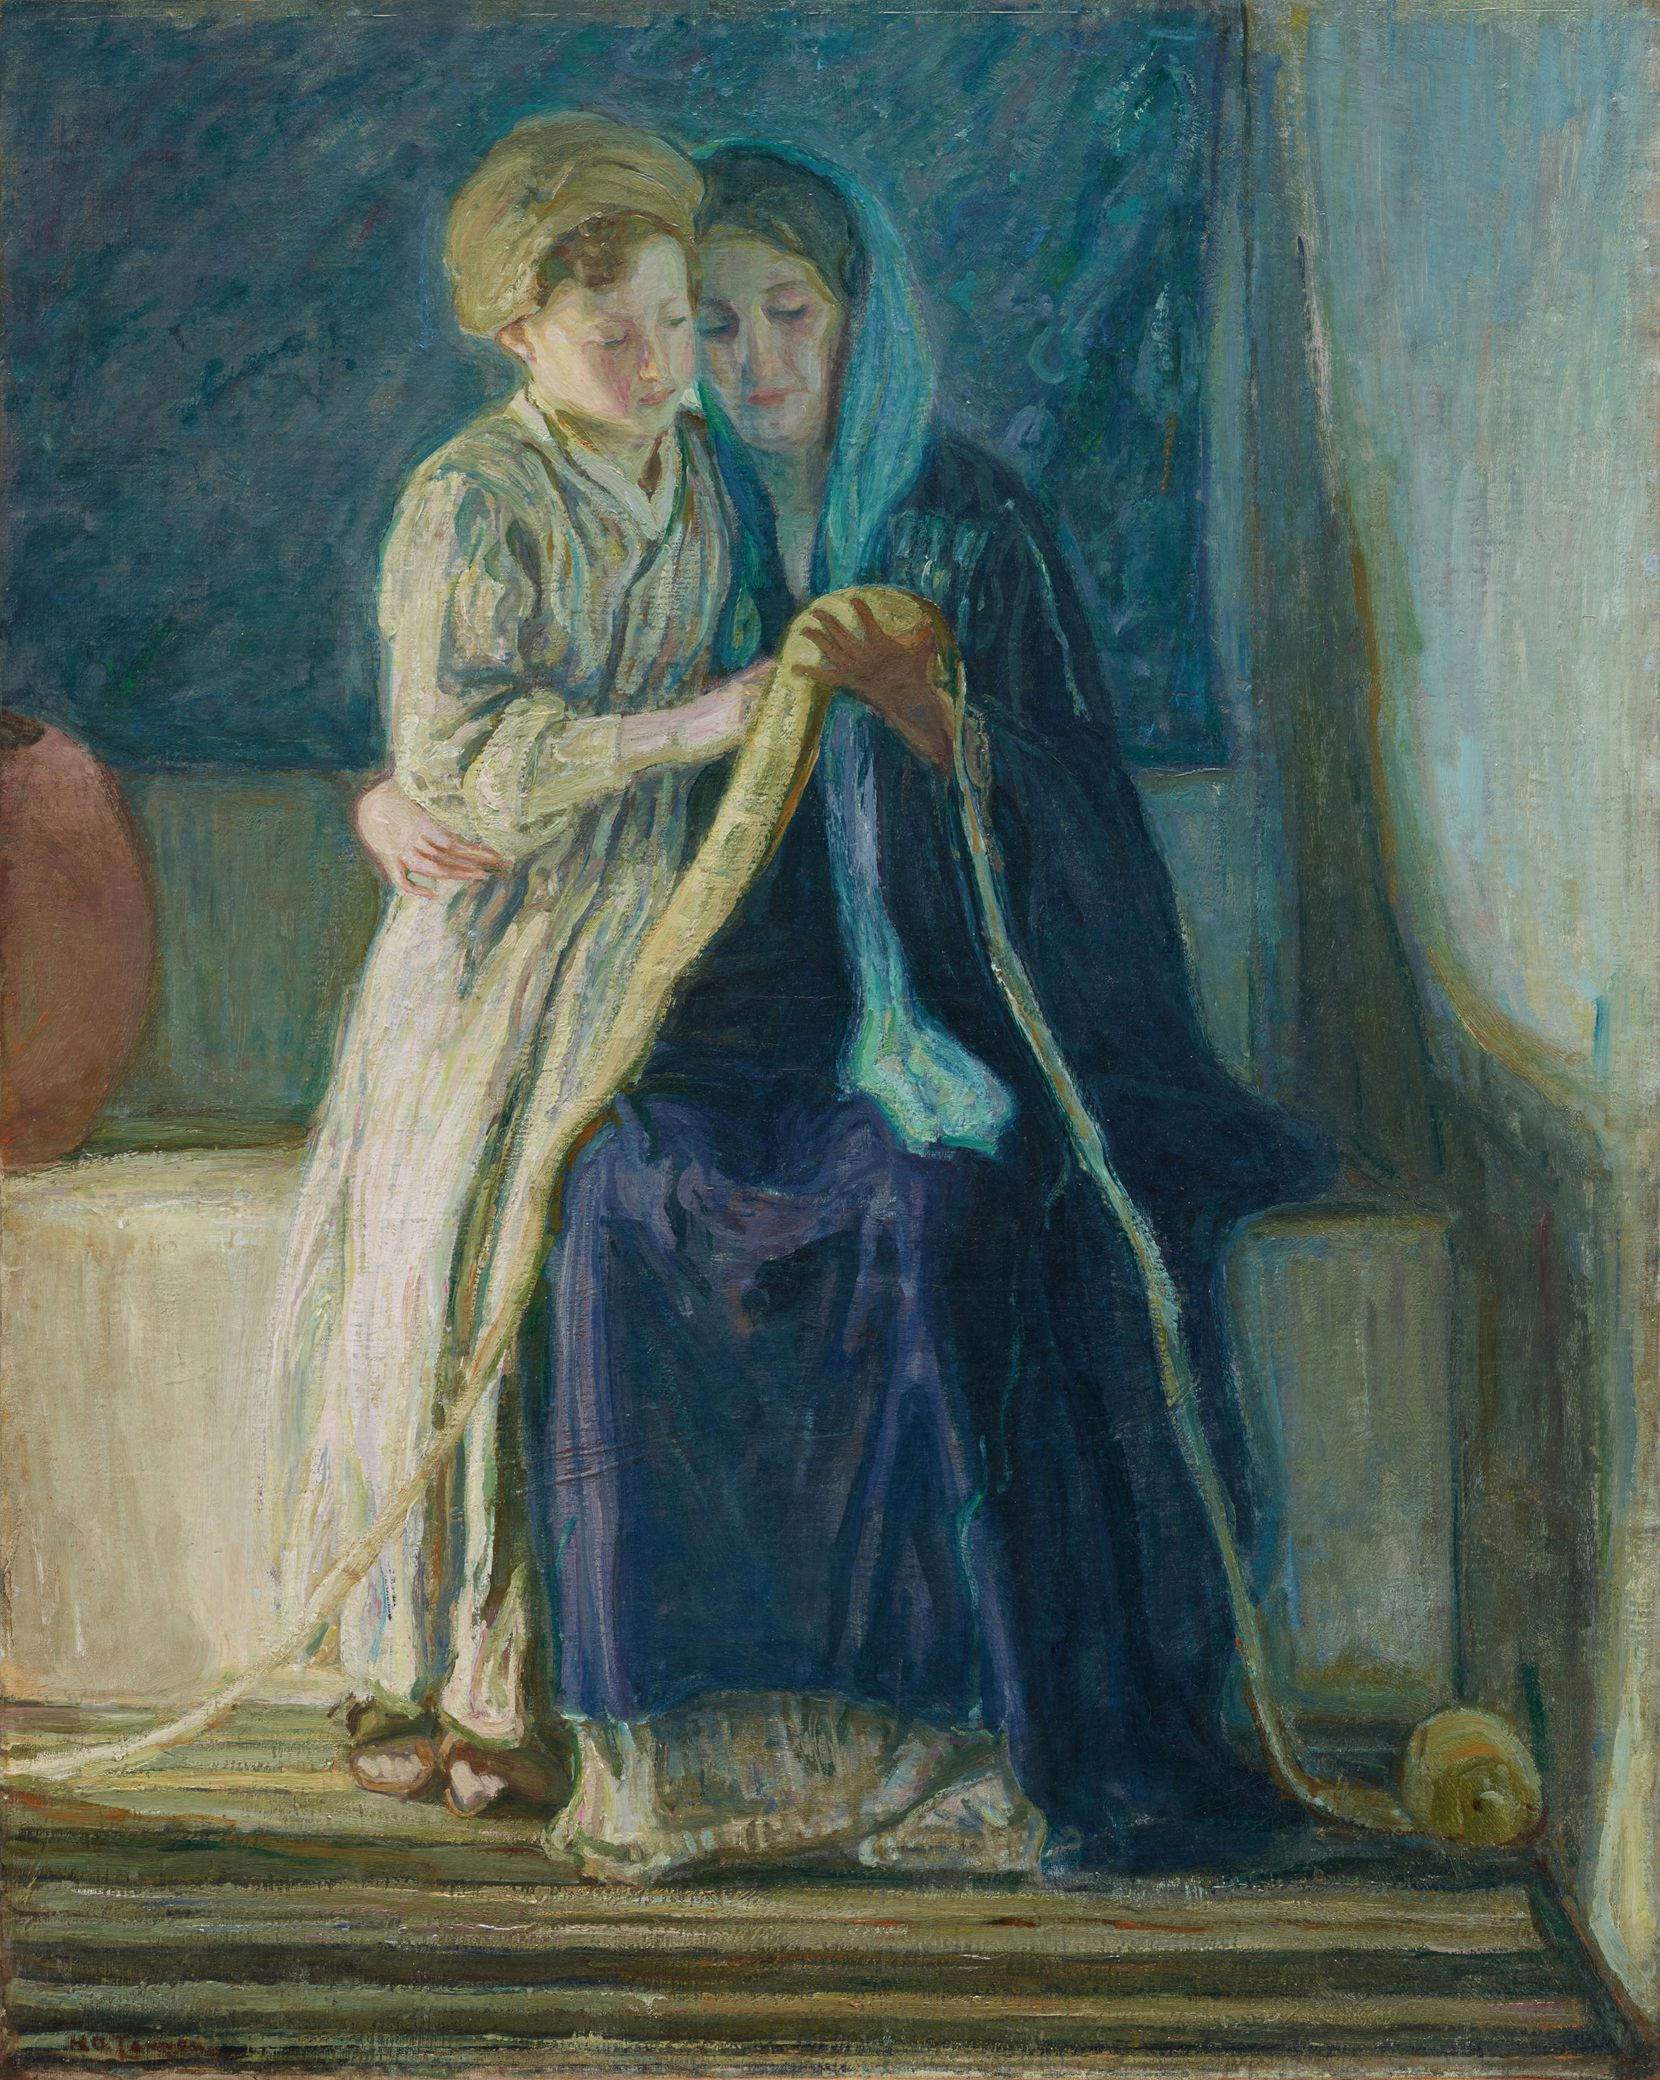 """Henry Ossawa Tanner's """"Christ and His Mother Studying the Scriptures"""" shows the artist's Impressionistic late-career style. (Dallas Museum of Art)"""